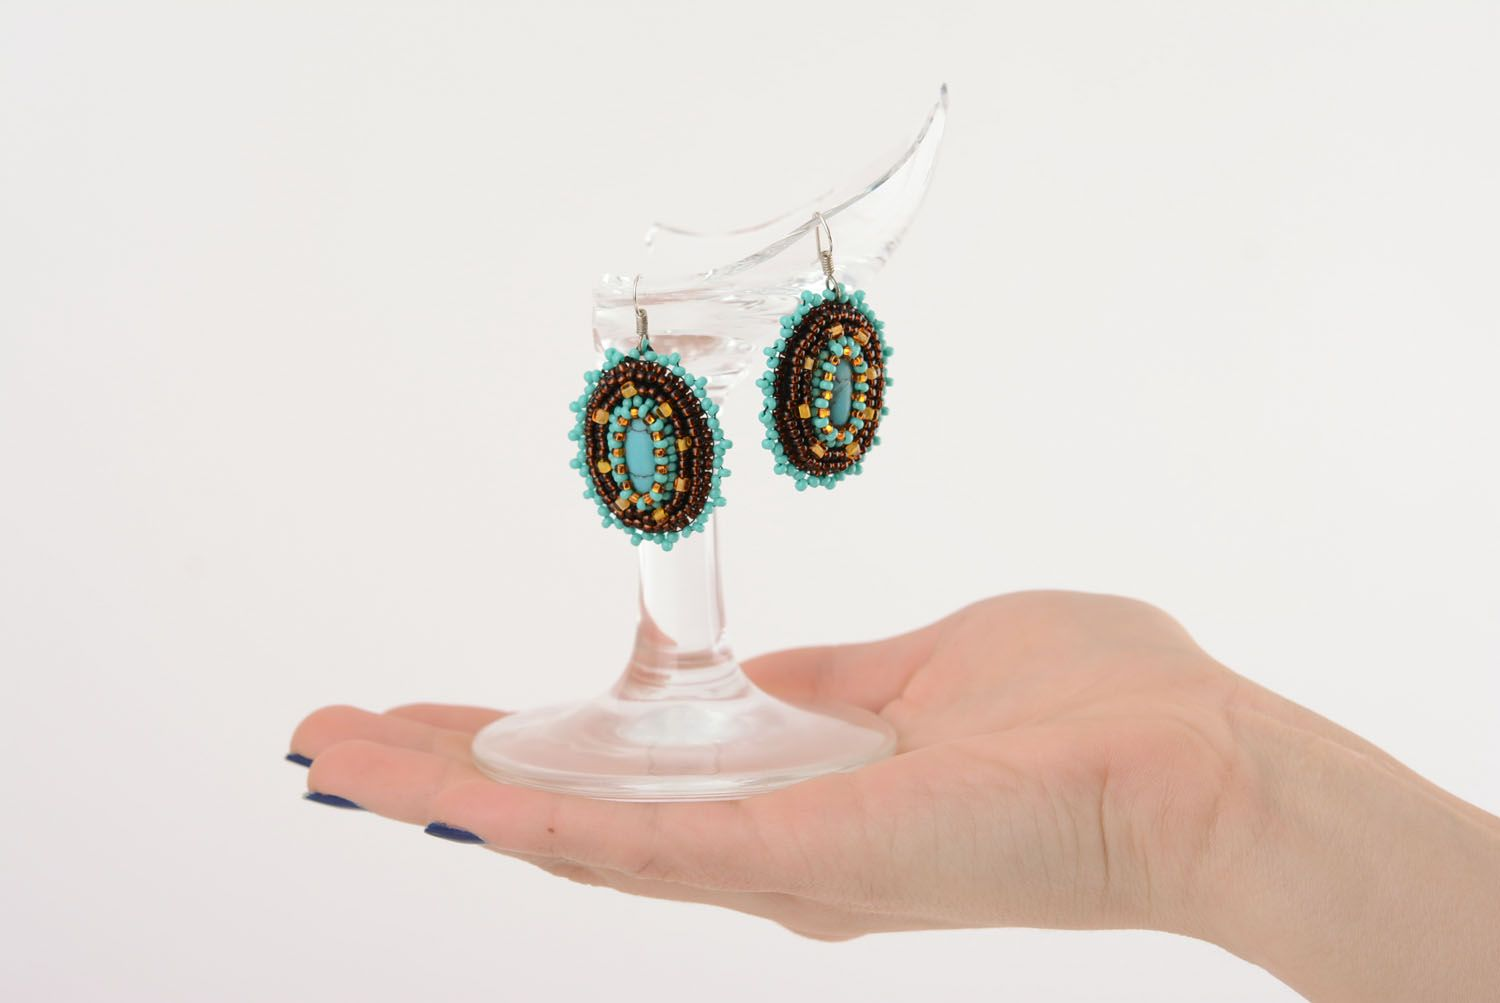 Earrings with charms Chocolate and Turquoise photo 5